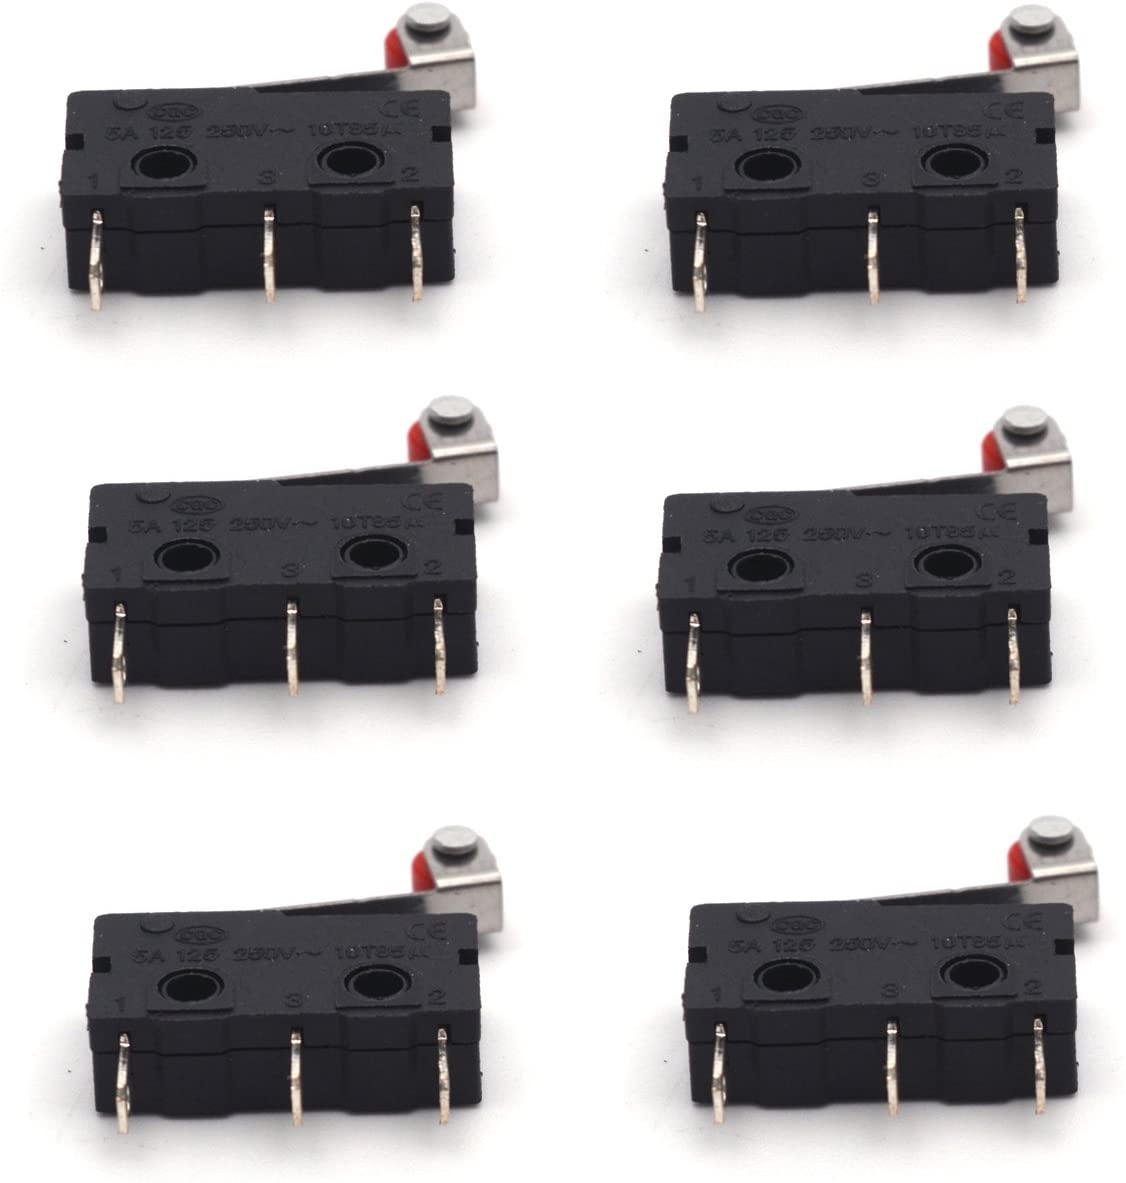 Antrader SS-5GL2 SPDT Long Hinge Roller 1NO 1NC Momentary Micro Limit Mini Switch 3 Pins Pack of 6